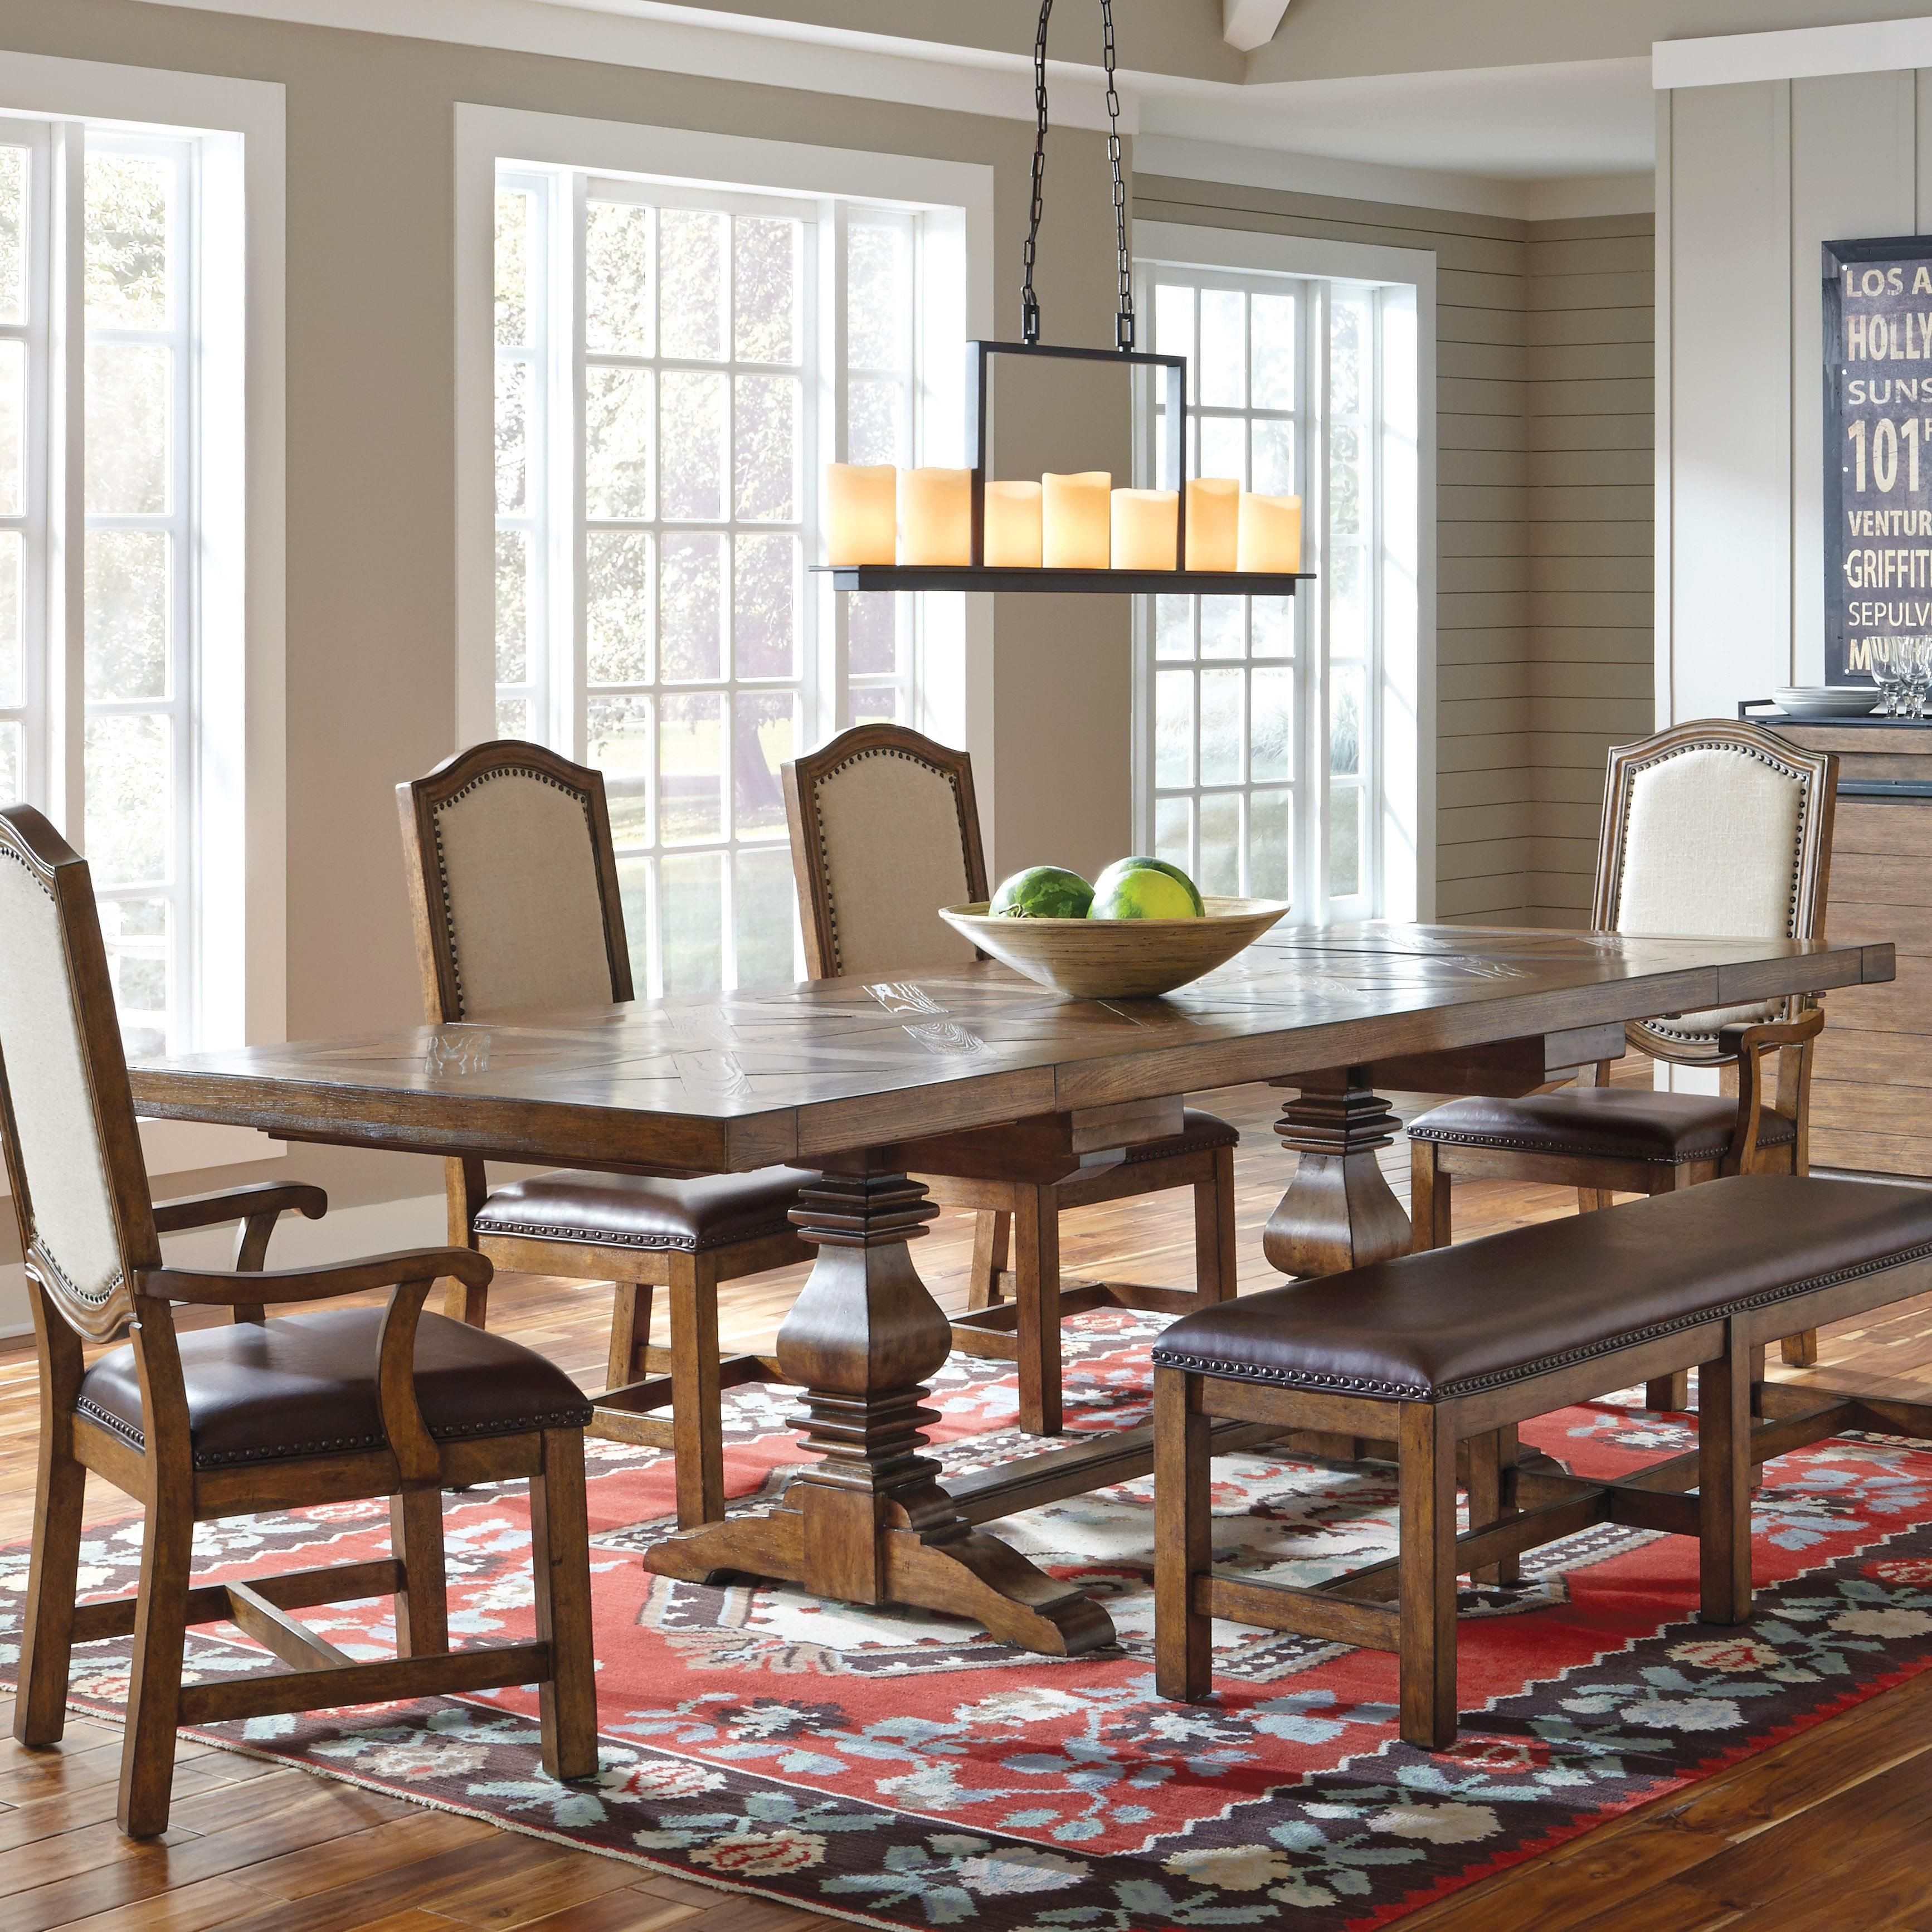 dark hardwood floor dining room of elegant dining room table and chairs for sale or latest designs with regard to elegant dining room table and chairs for sale or latest designs ideas at dining room with wicker outdoor sofa 0d